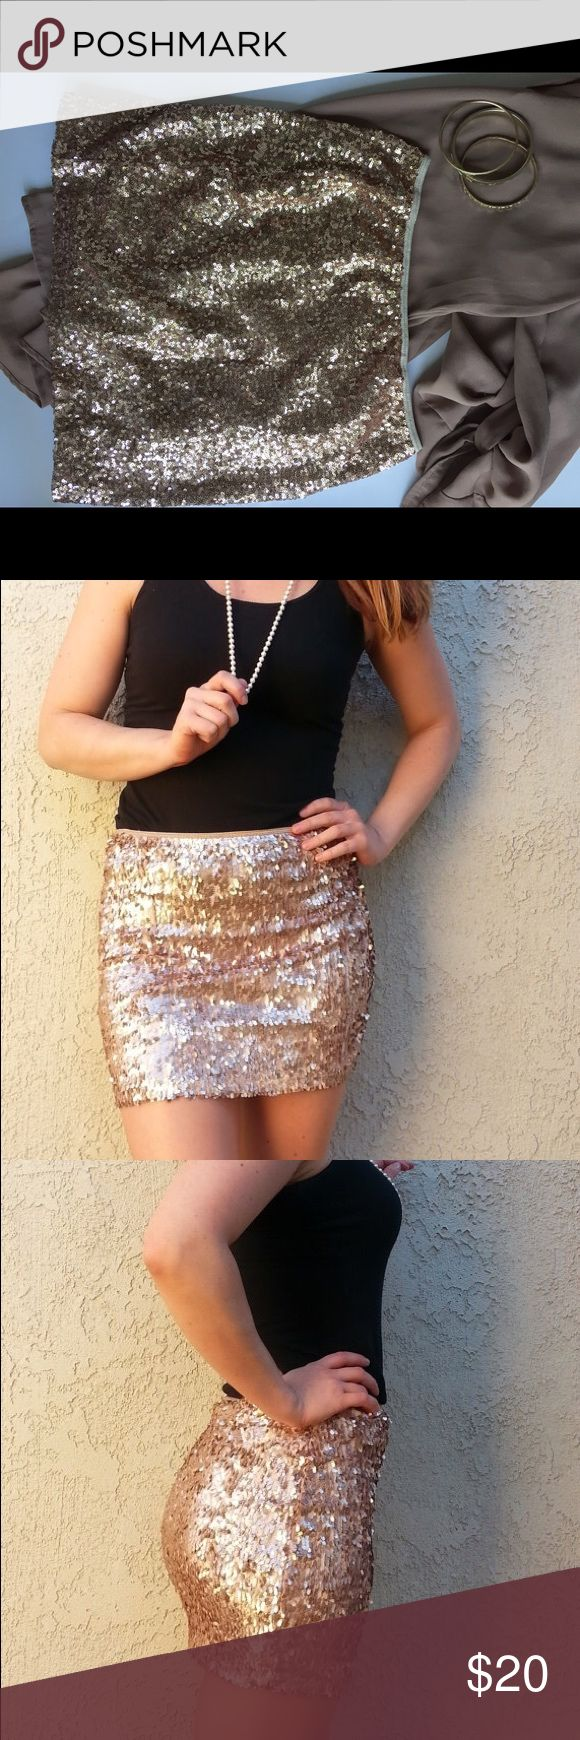 """Rose Gold sequin body con skirt Handmade item. Sequins on mesh with a lycra lining. Only worn one time. 14.5"""" long Skirts Mini"""